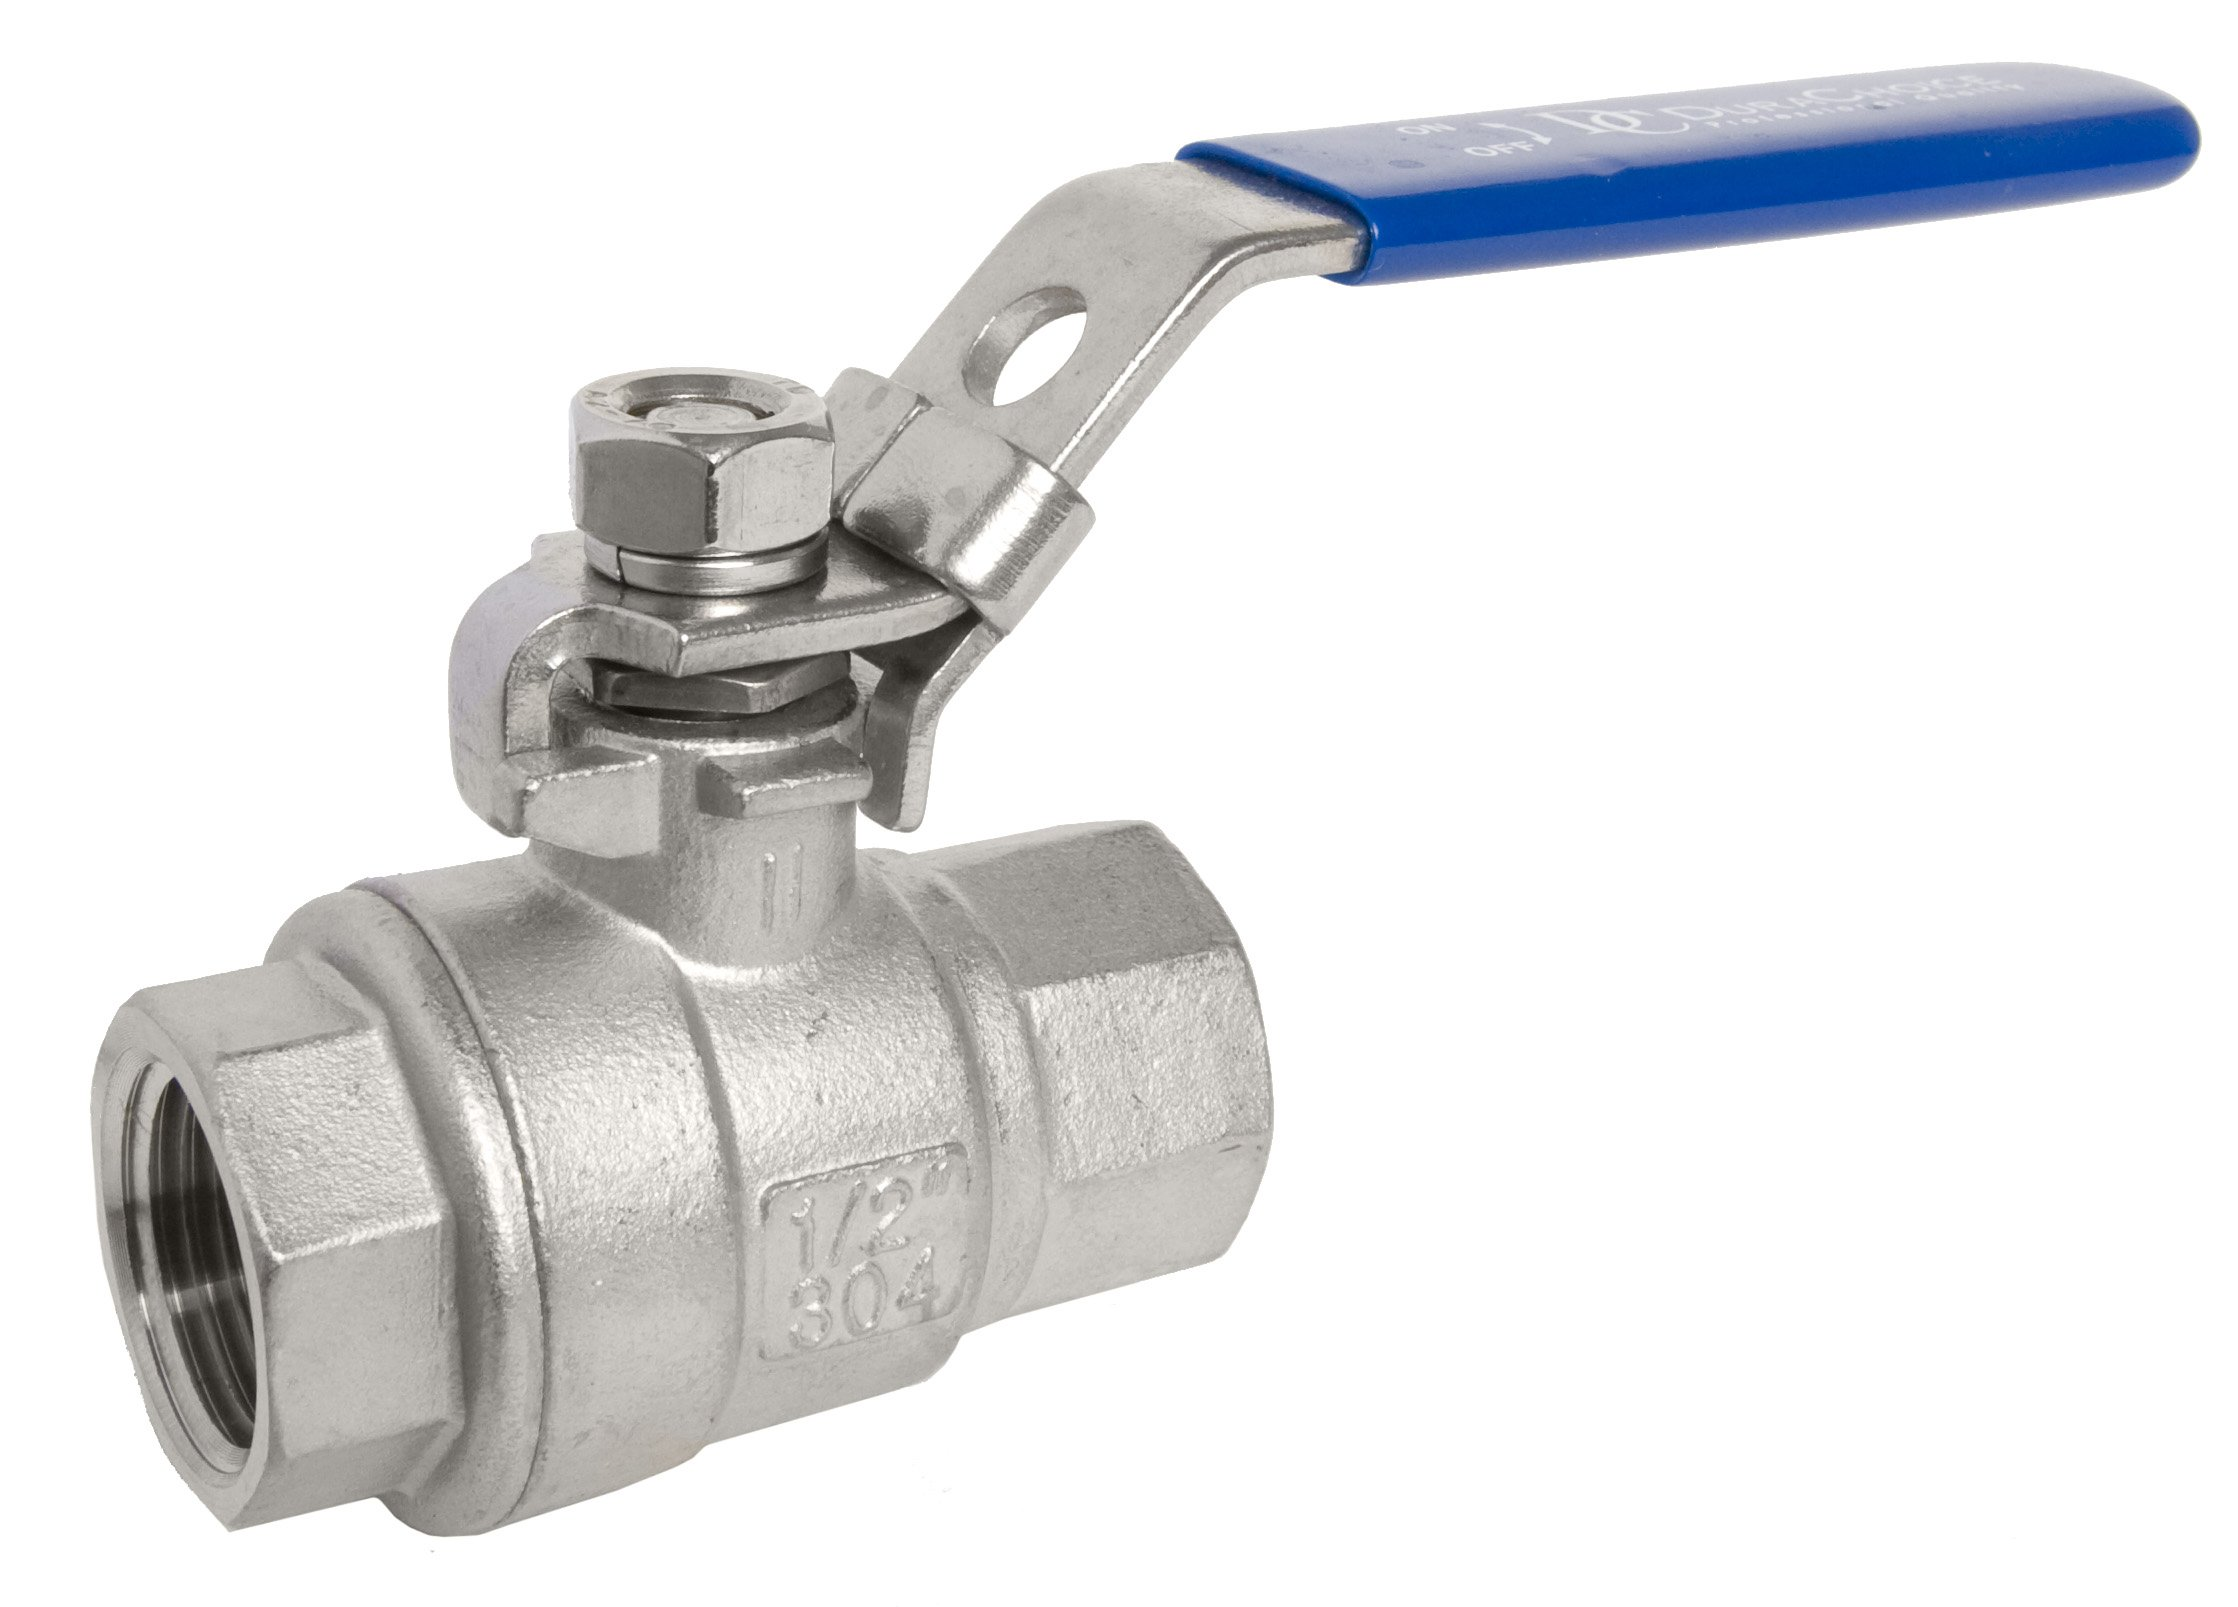 1/2'' DuraChoice SS 304 Stainless Steel Ball Valve - Full Port, 1000 WOG for Water, Oil, and Gas with Blue Locking Handles, NPT Connection